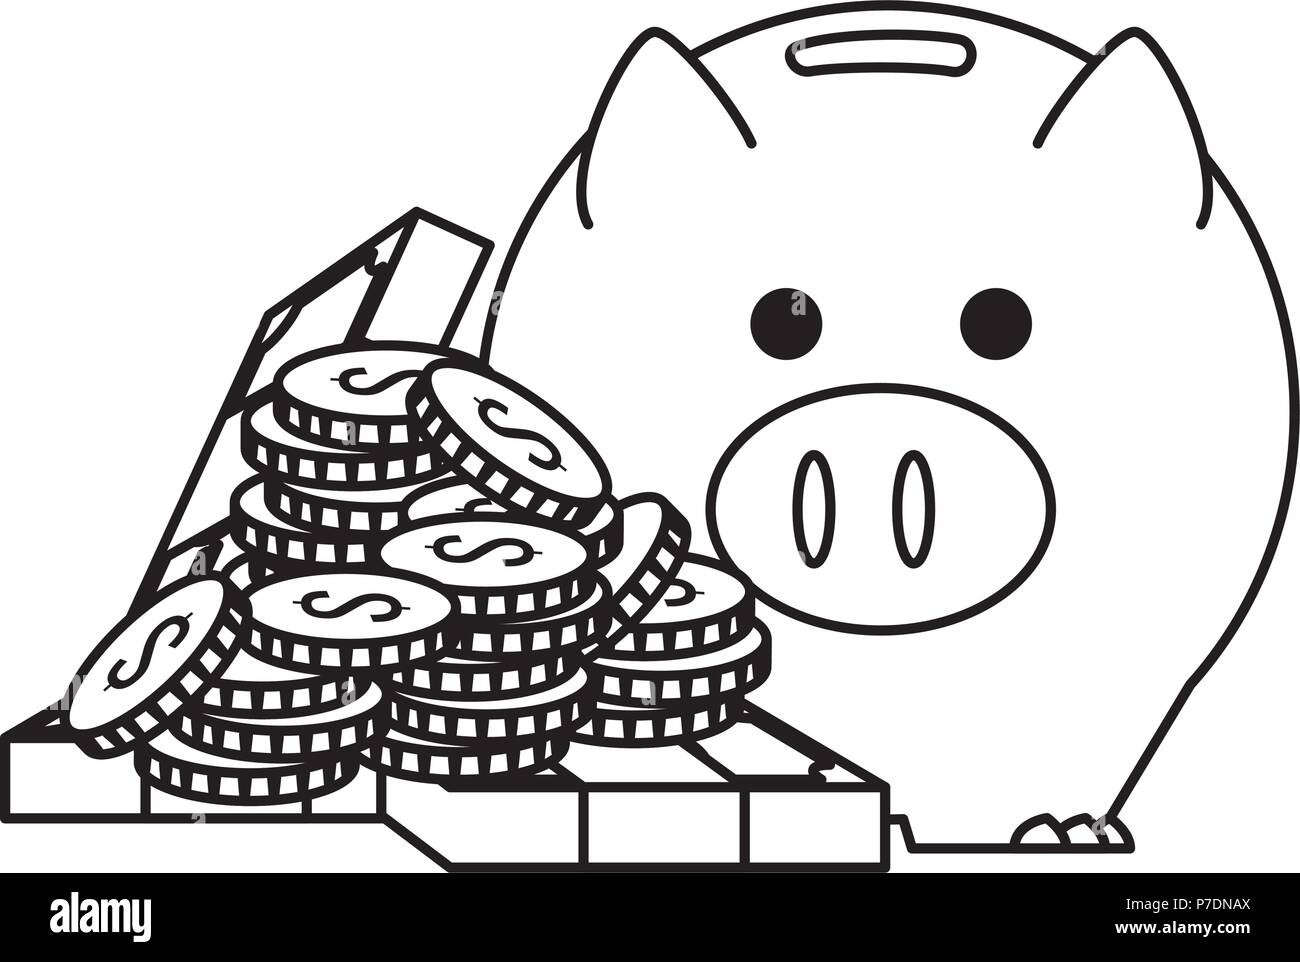 piggy savings economy icons - Stock Image